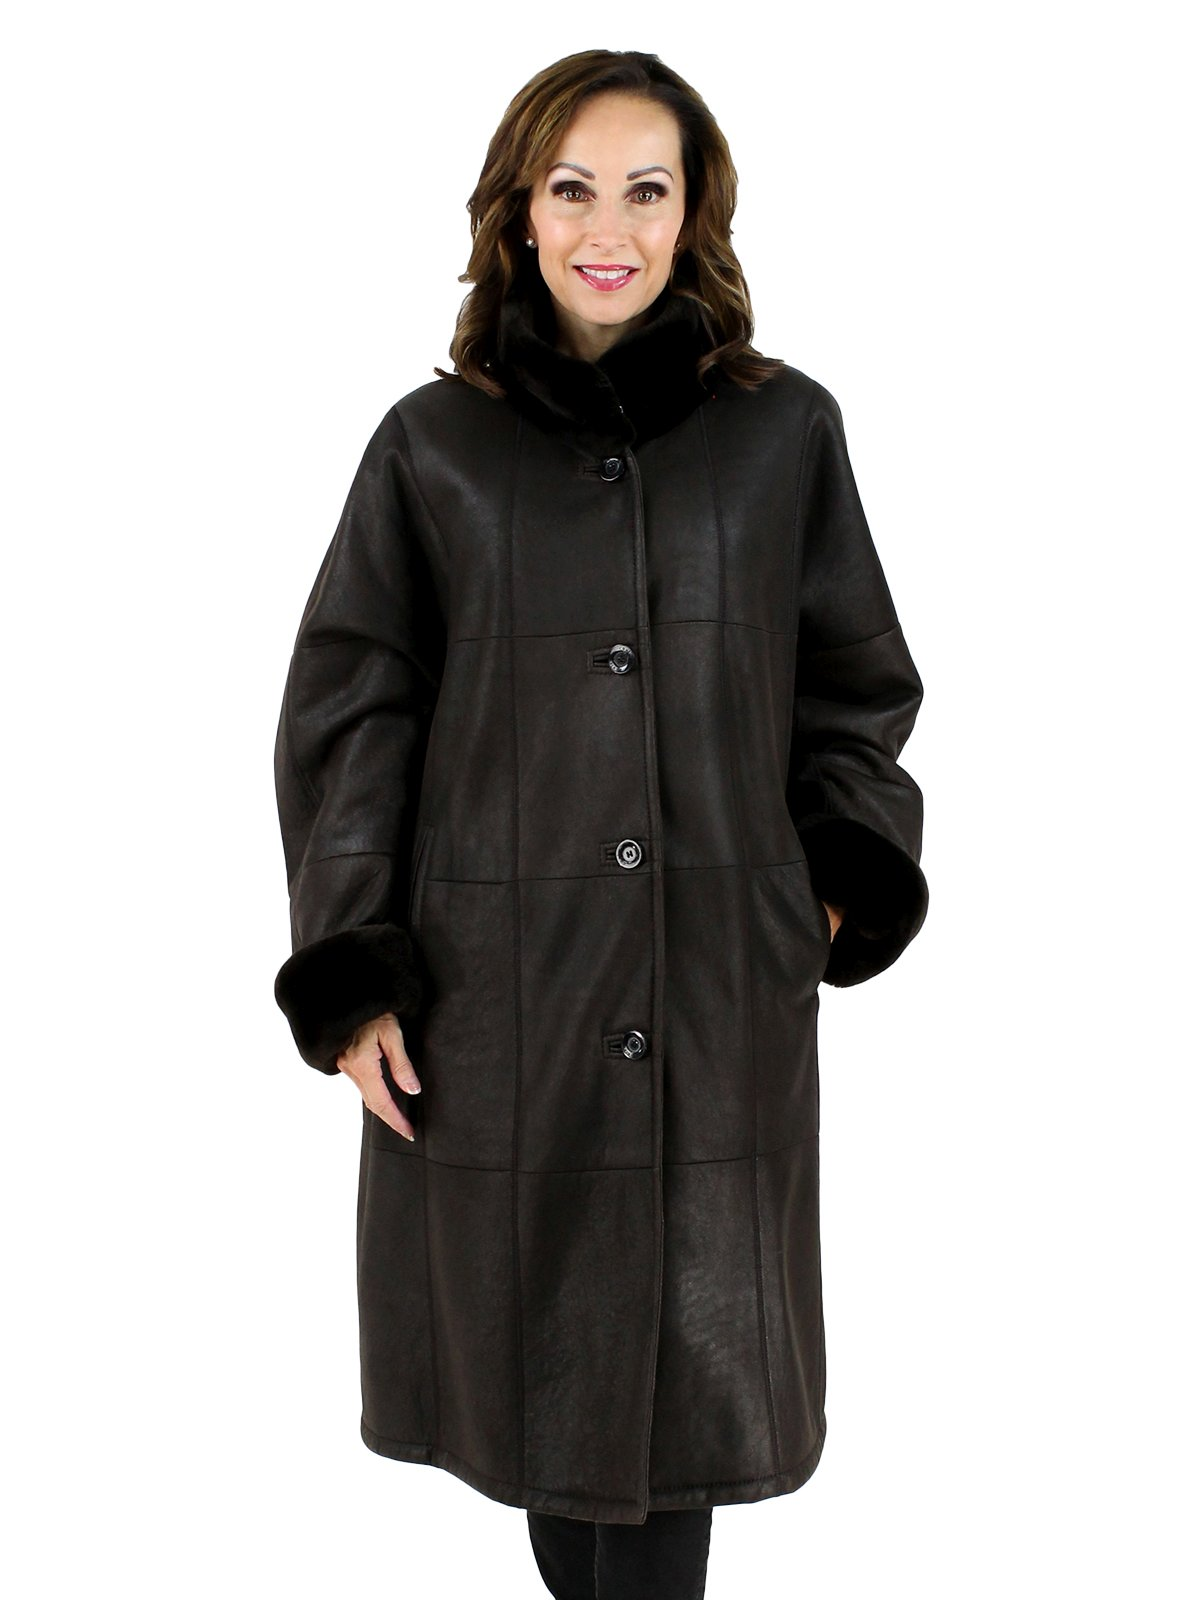 Woman's Plus Size Christ Brown Shearling Lamb Coat with Sheared Nutria Collar and Cuffs